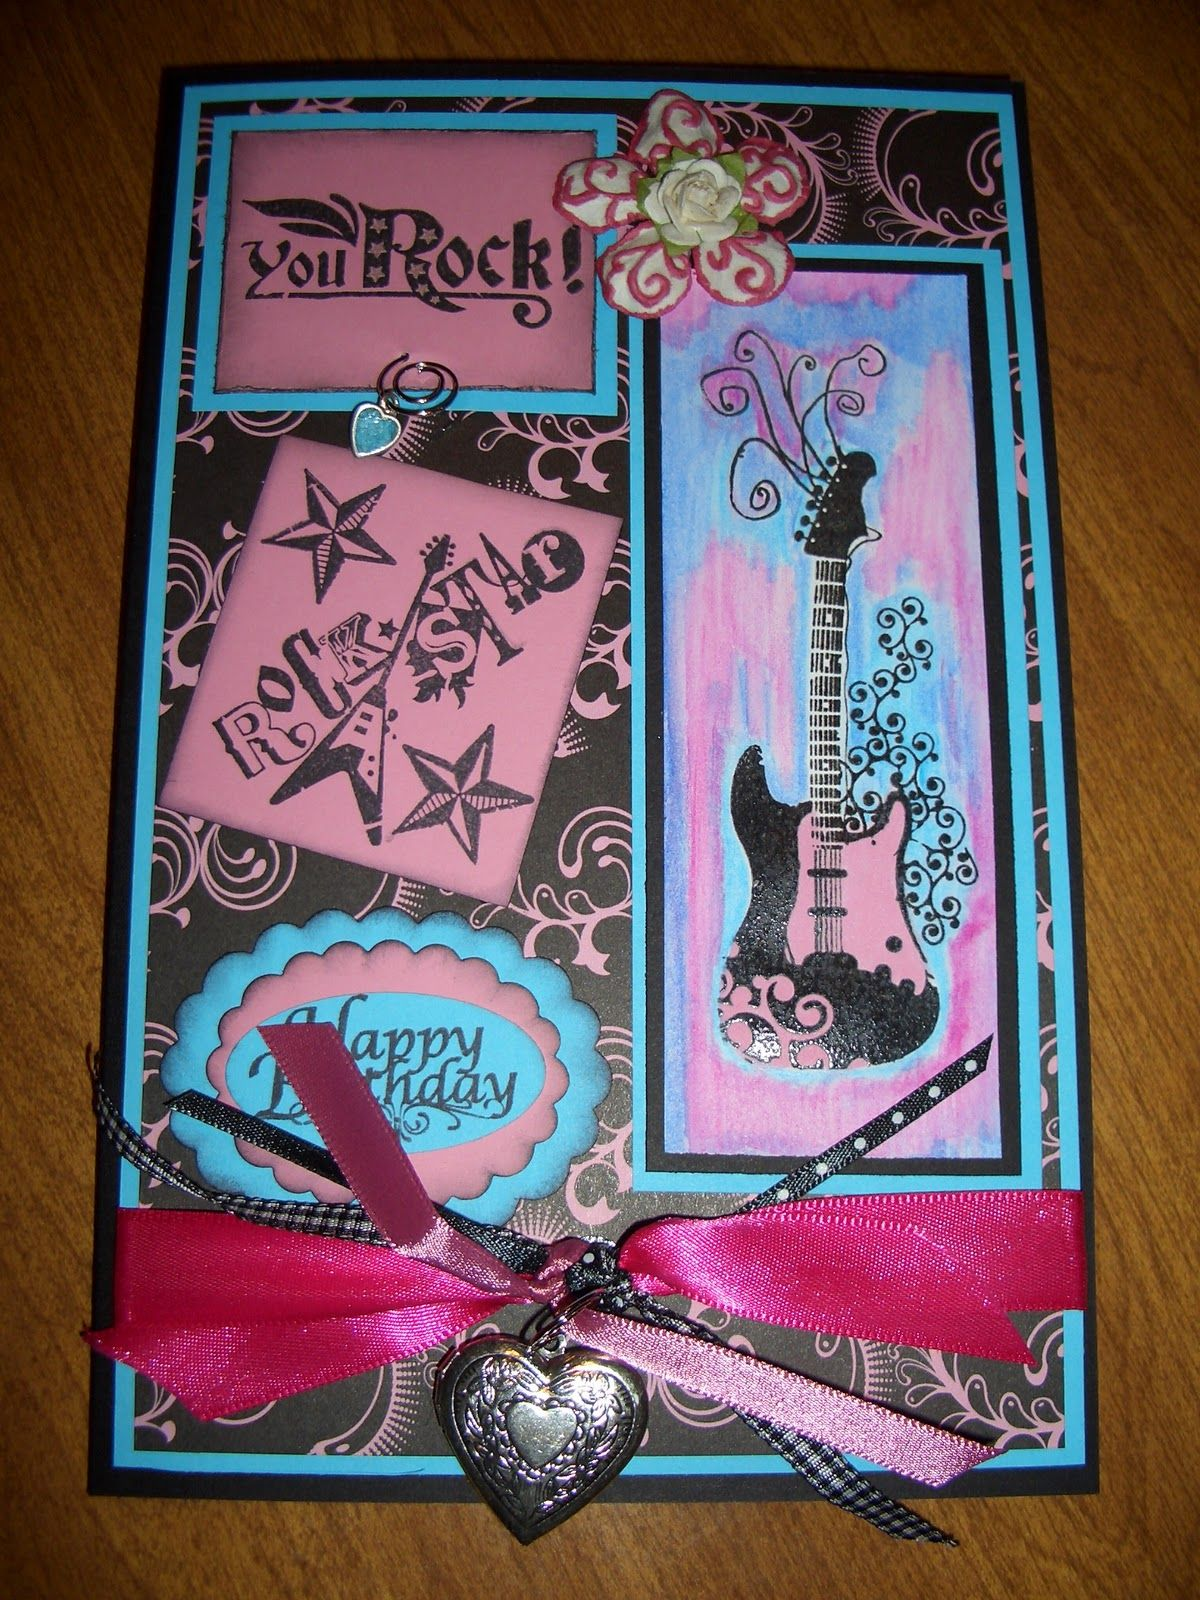 Homemade birthday cards for girl groove on with gillian teen girl homemade birthday cards for girl groove on with gillian teen girl birthday card bookmarktalkfo